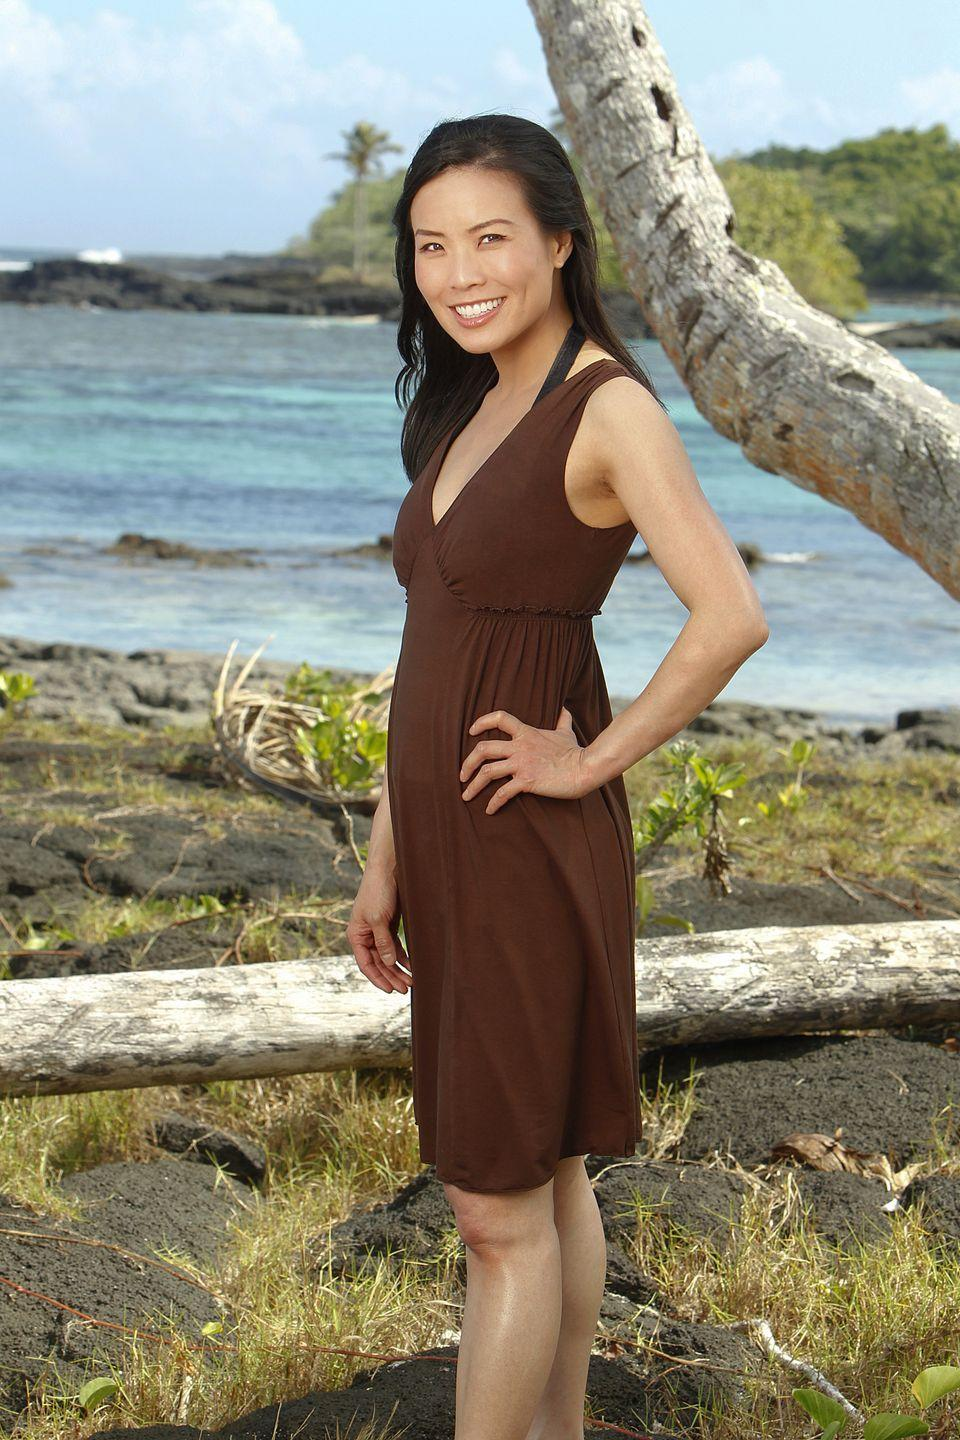 "<p><a href=""https://survivor.fandom.com/wiki/Edna_Ma"" rel=""nofollow noopener"" target=""_blank"" data-ylk=""slk:Edna Ma"" class=""link rapid-noclick-resp"">Edna Ma</a> was a contestant on <em>Survivor: South Pacific</em> in 2011, where she finished in 7th place out of 18 contestants.</p>"